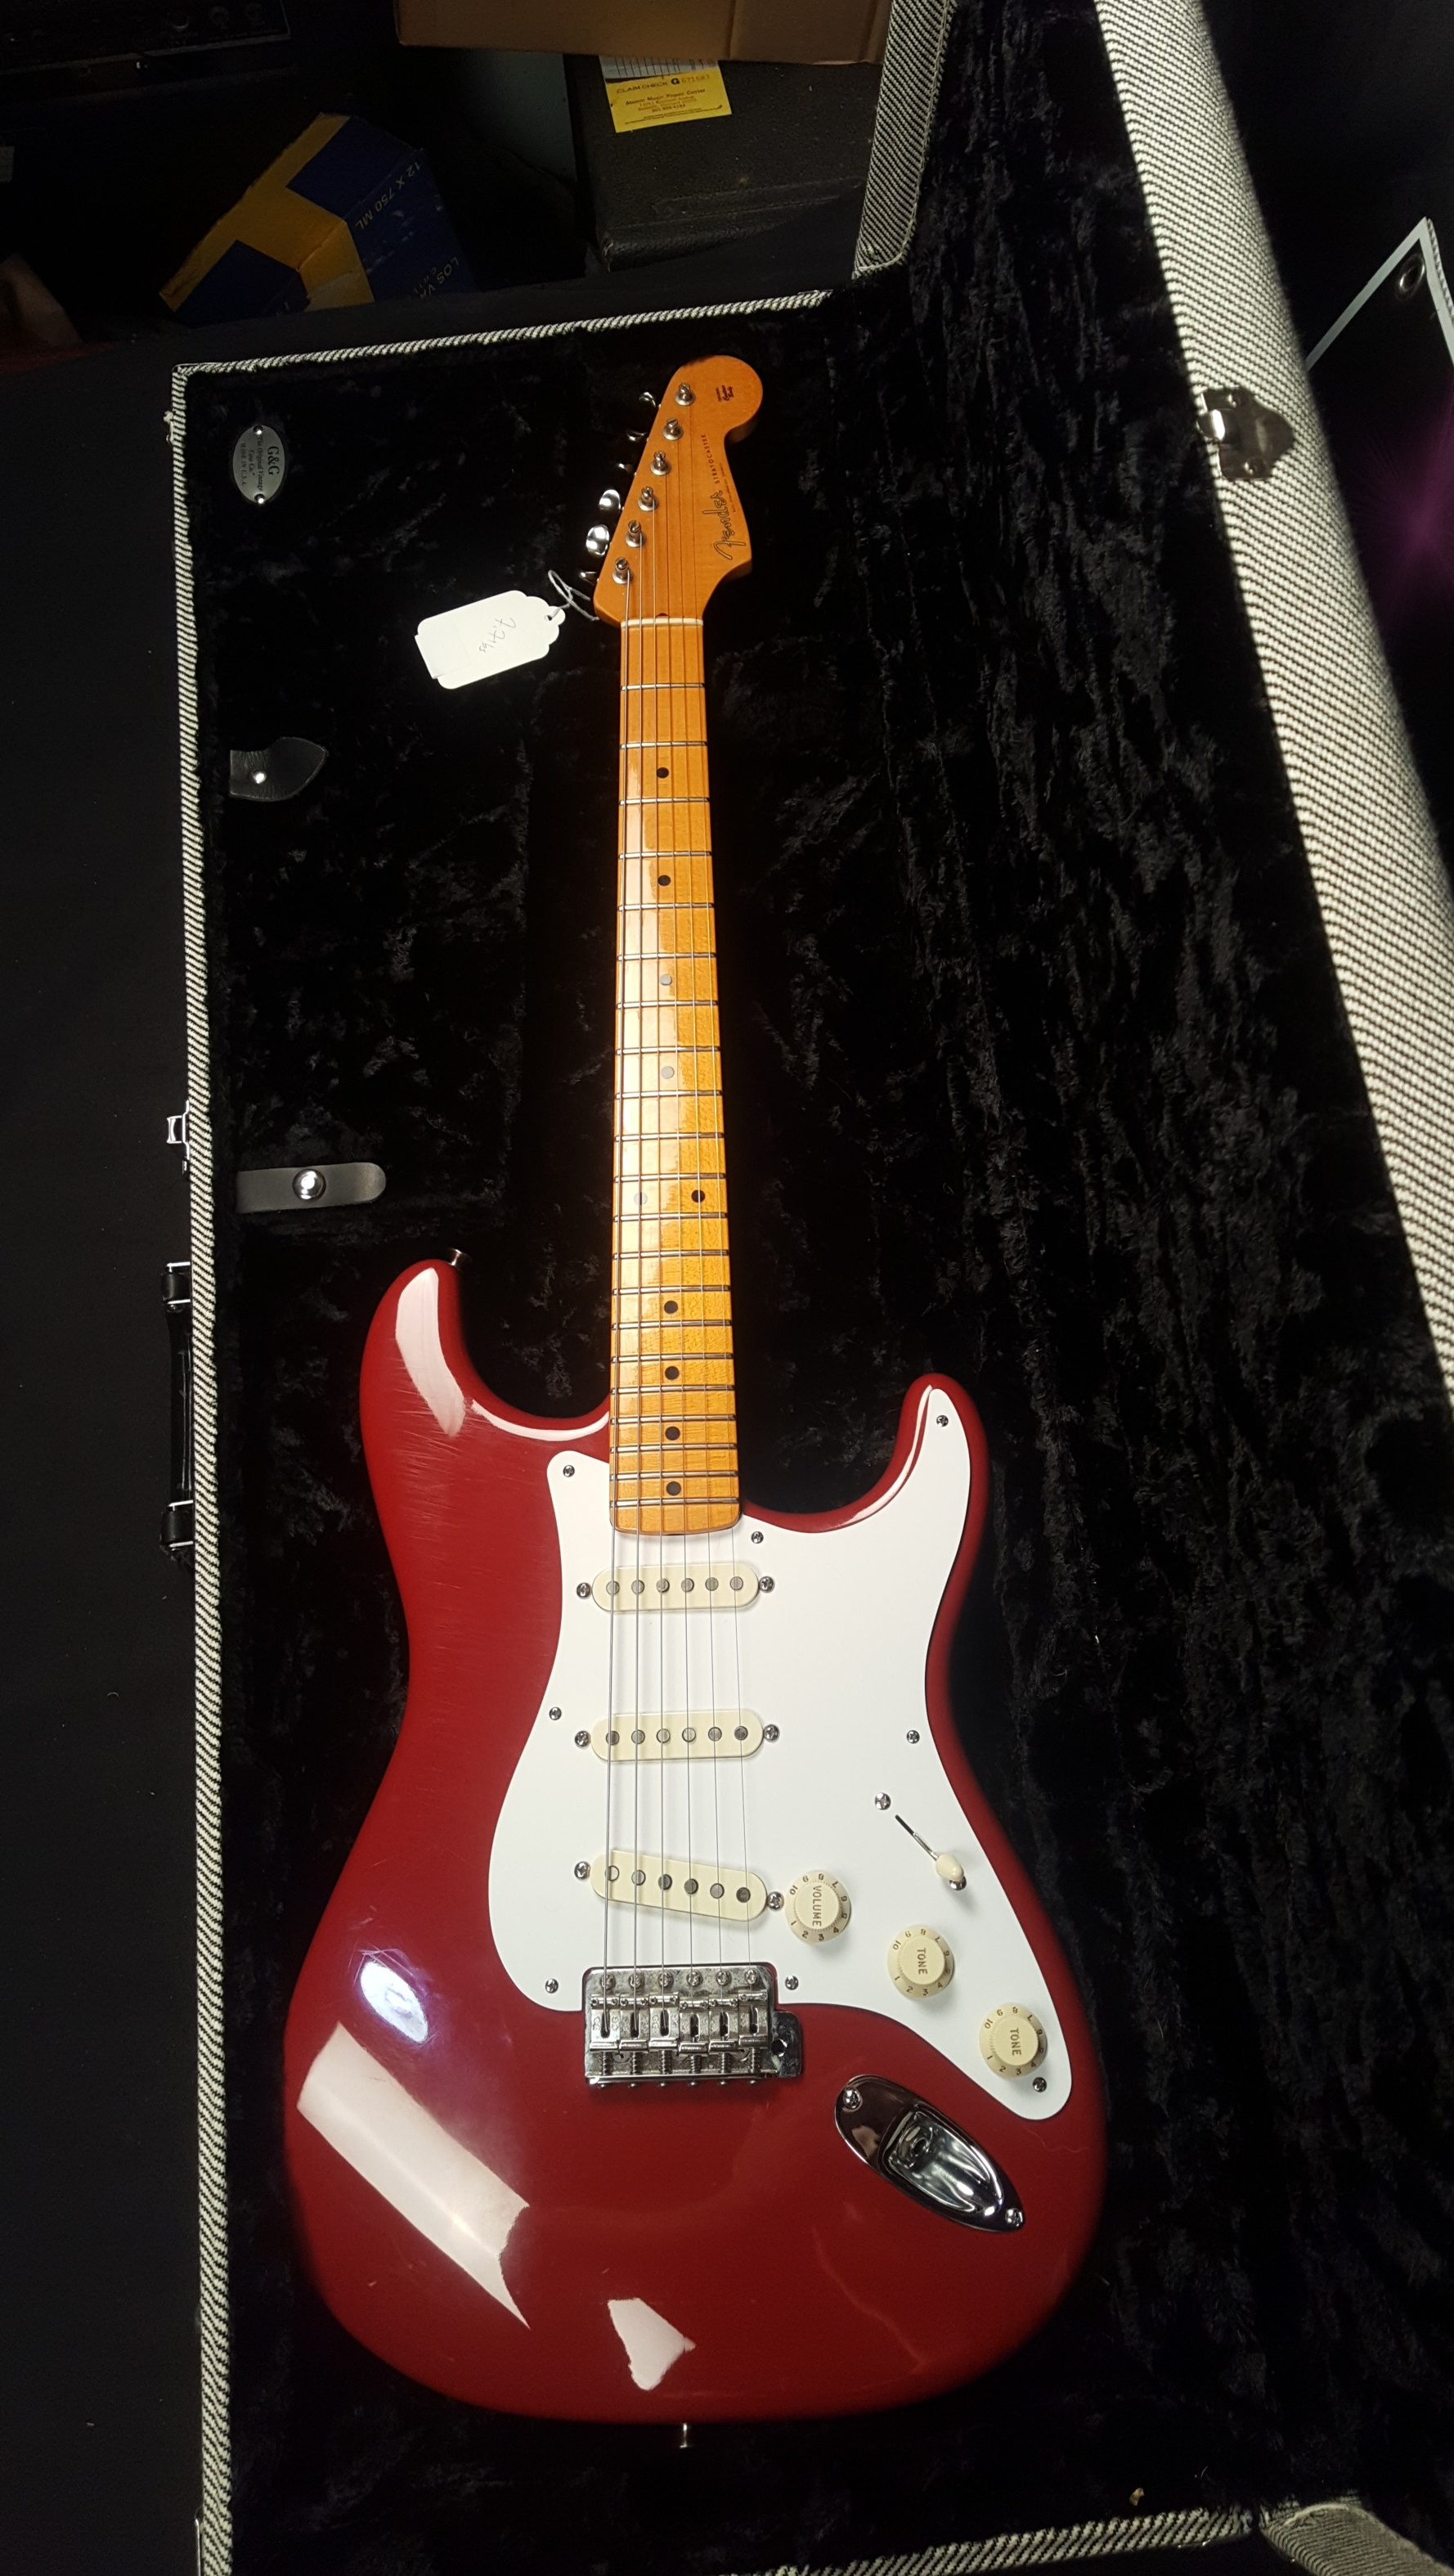 FENDER ERIC JOHNSON Stratocaster Electric Guitar W/HSC - CANDY APPLE RED!